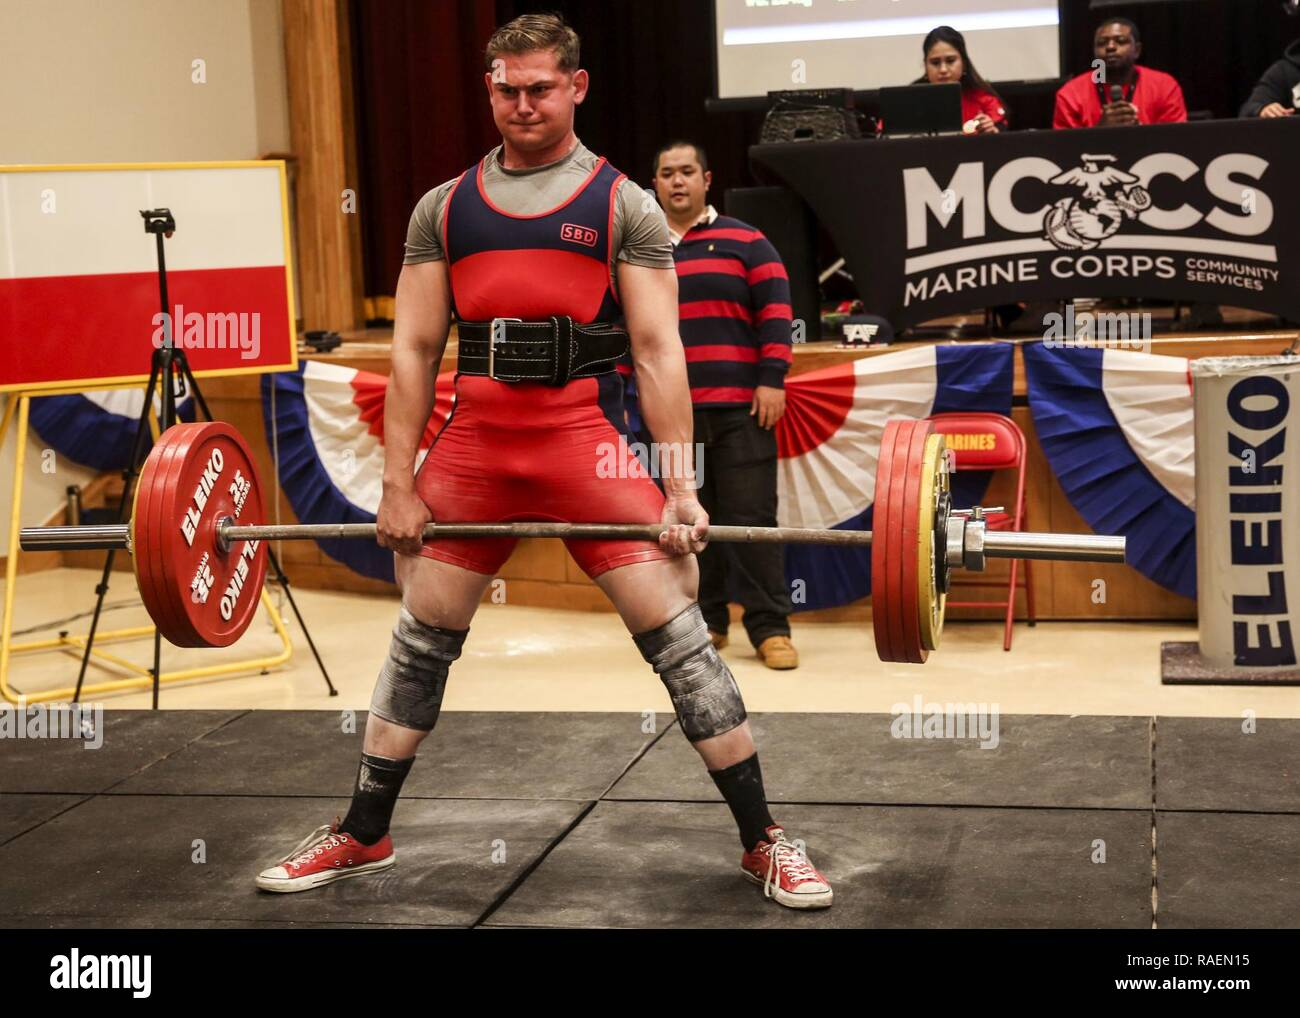 Maximum Weight Stock Photos & Maximum Weight Stock Images - Alamy